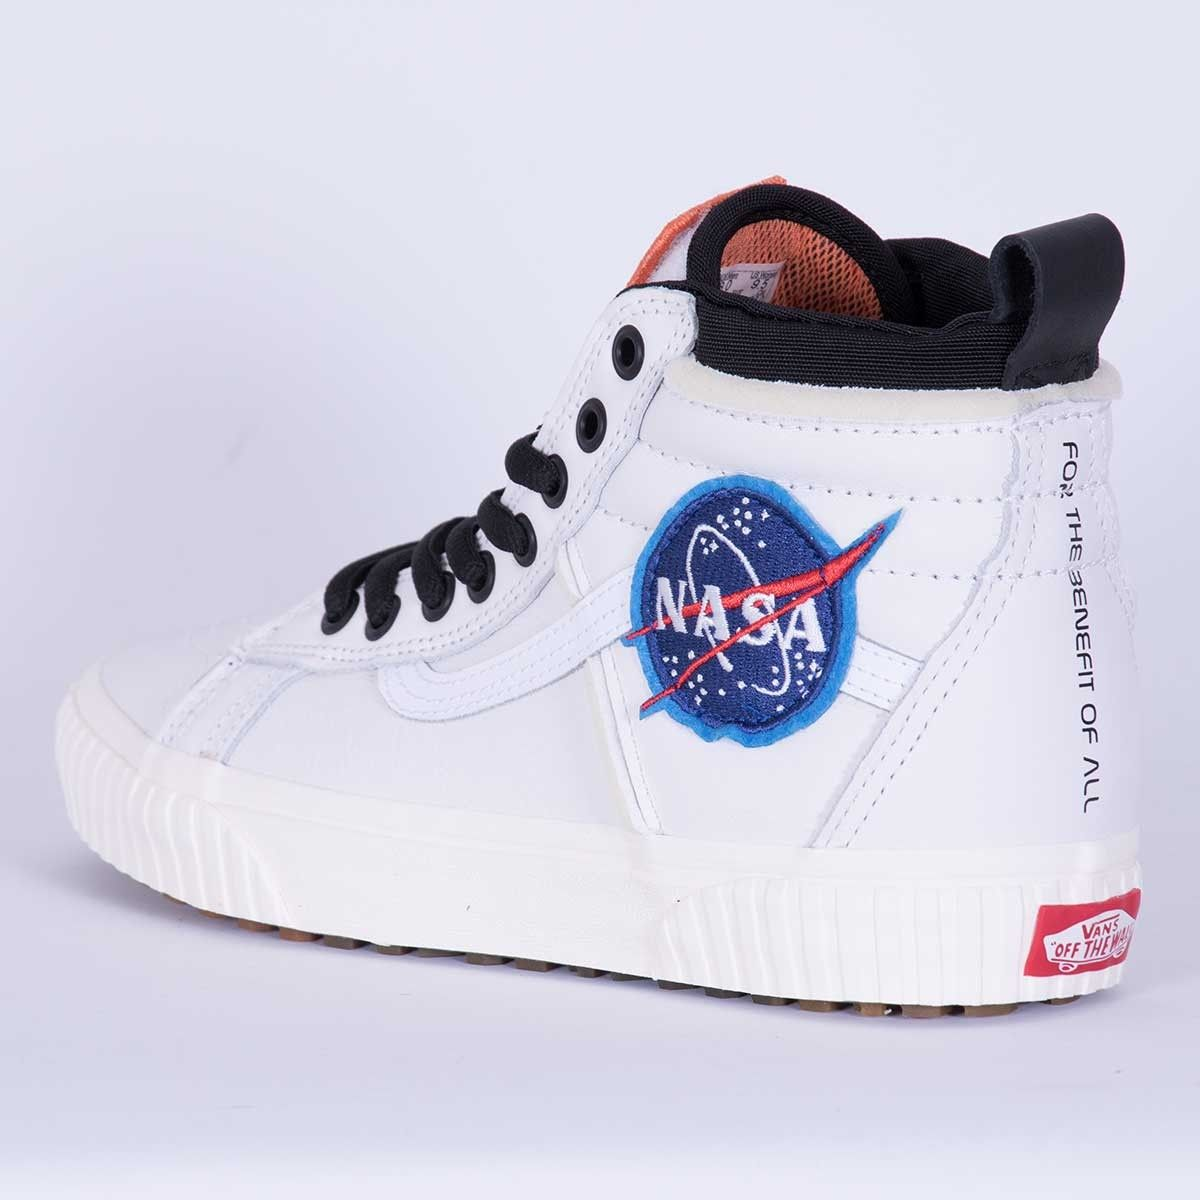 Vans x NASA Sk8 Hi 46 MTE DX Space Voyager True White